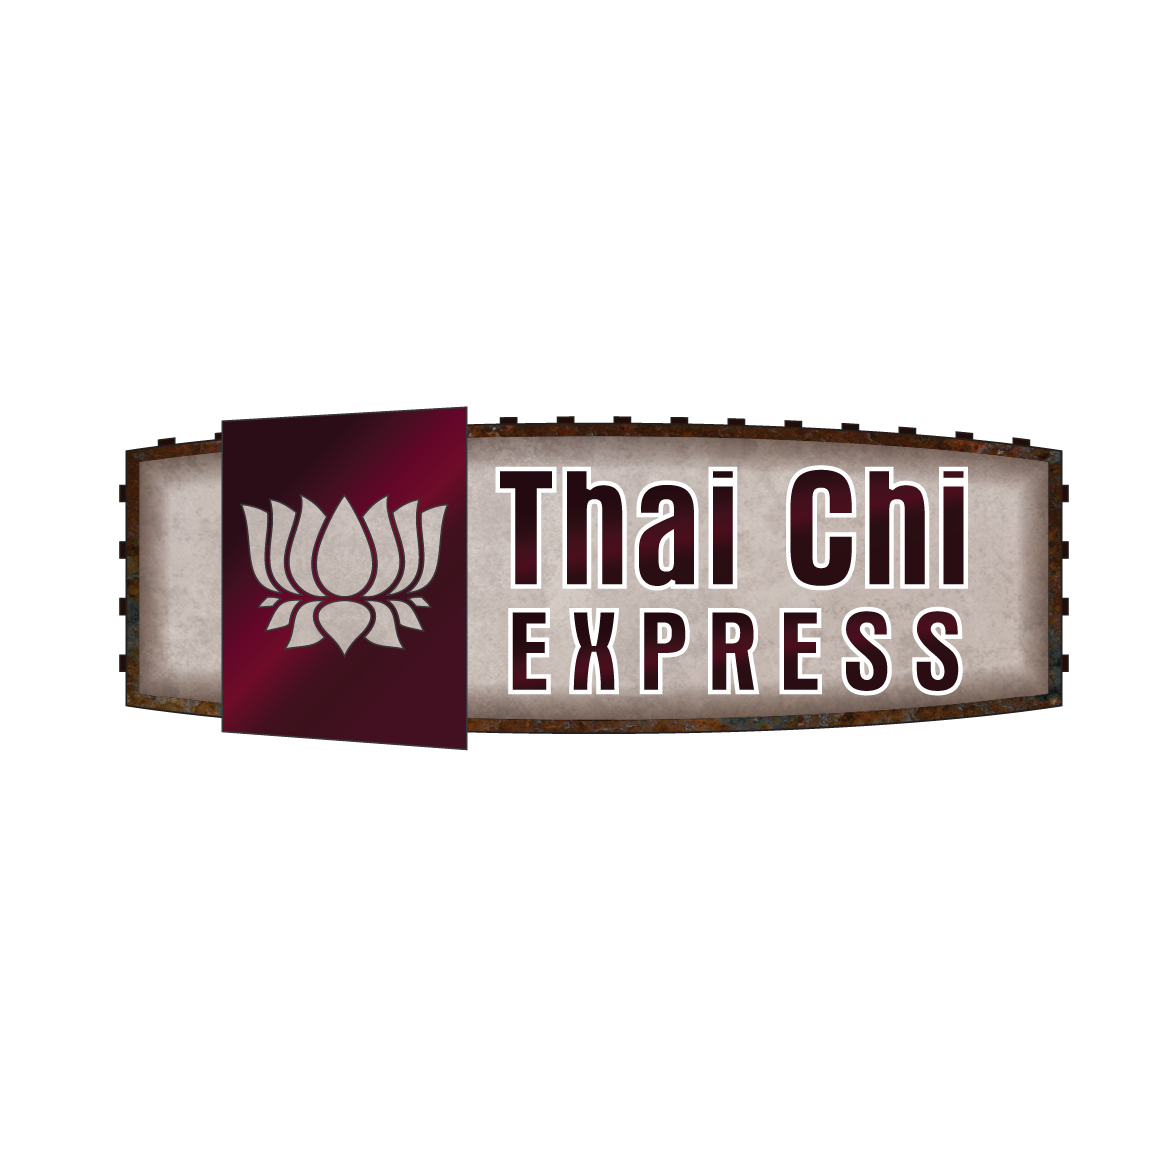 The Thai Chi Express